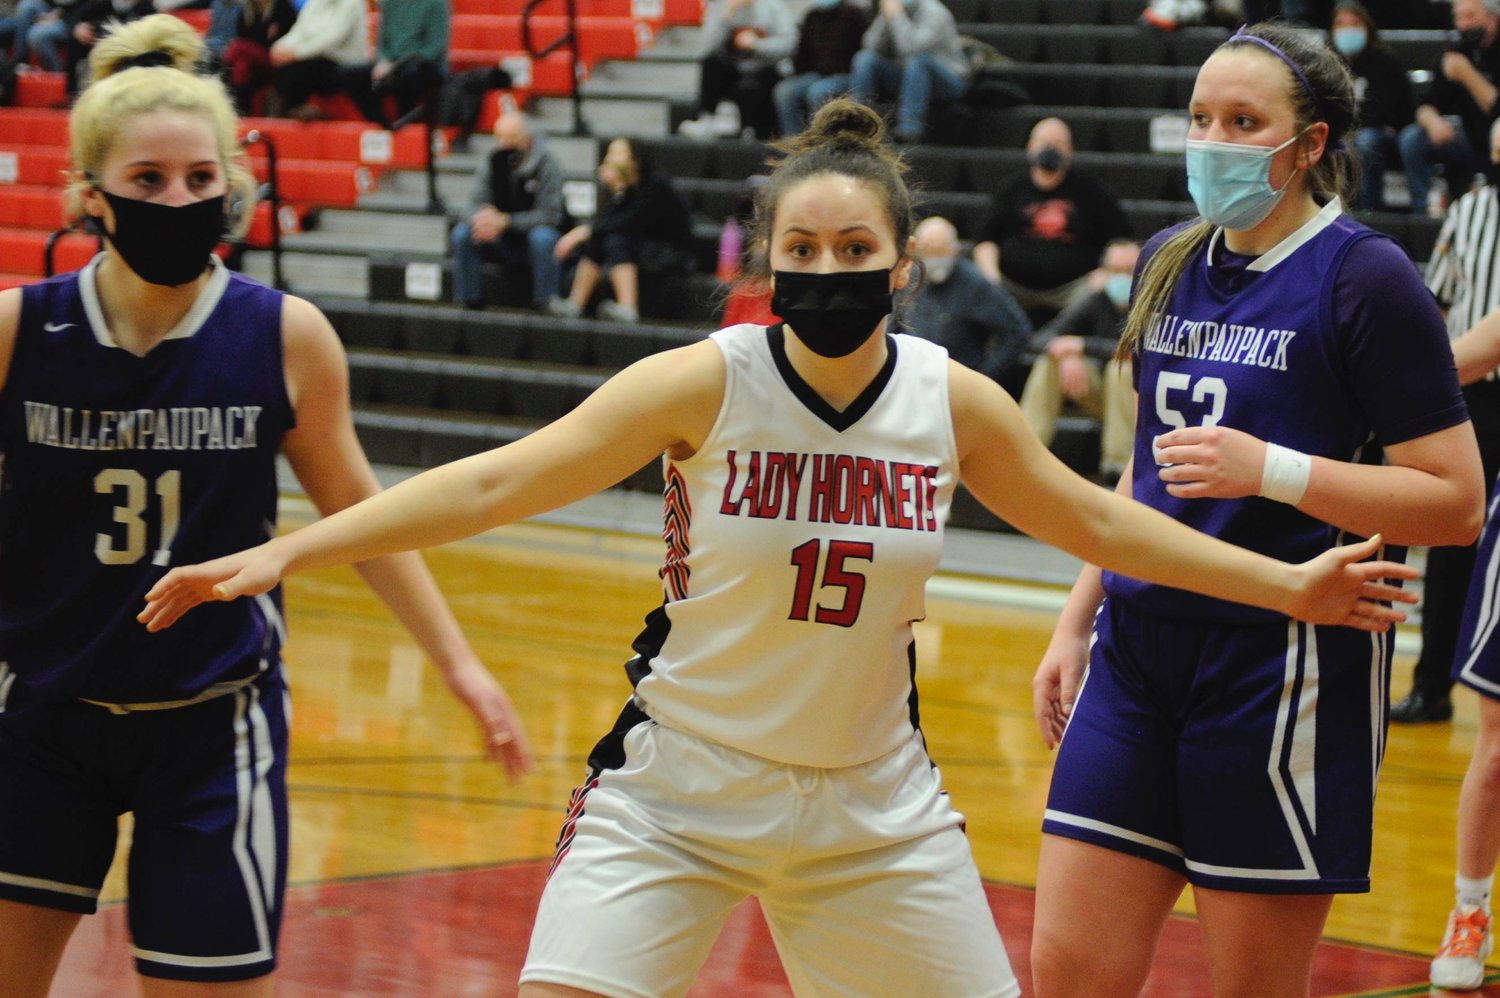 Guardian of the glass. Honesdale's senior co-captain Grace Maxson started on the hardwood at Preston in the sixth grade. In Friday's game against the Lady Buckhorns, she posted 12 points.